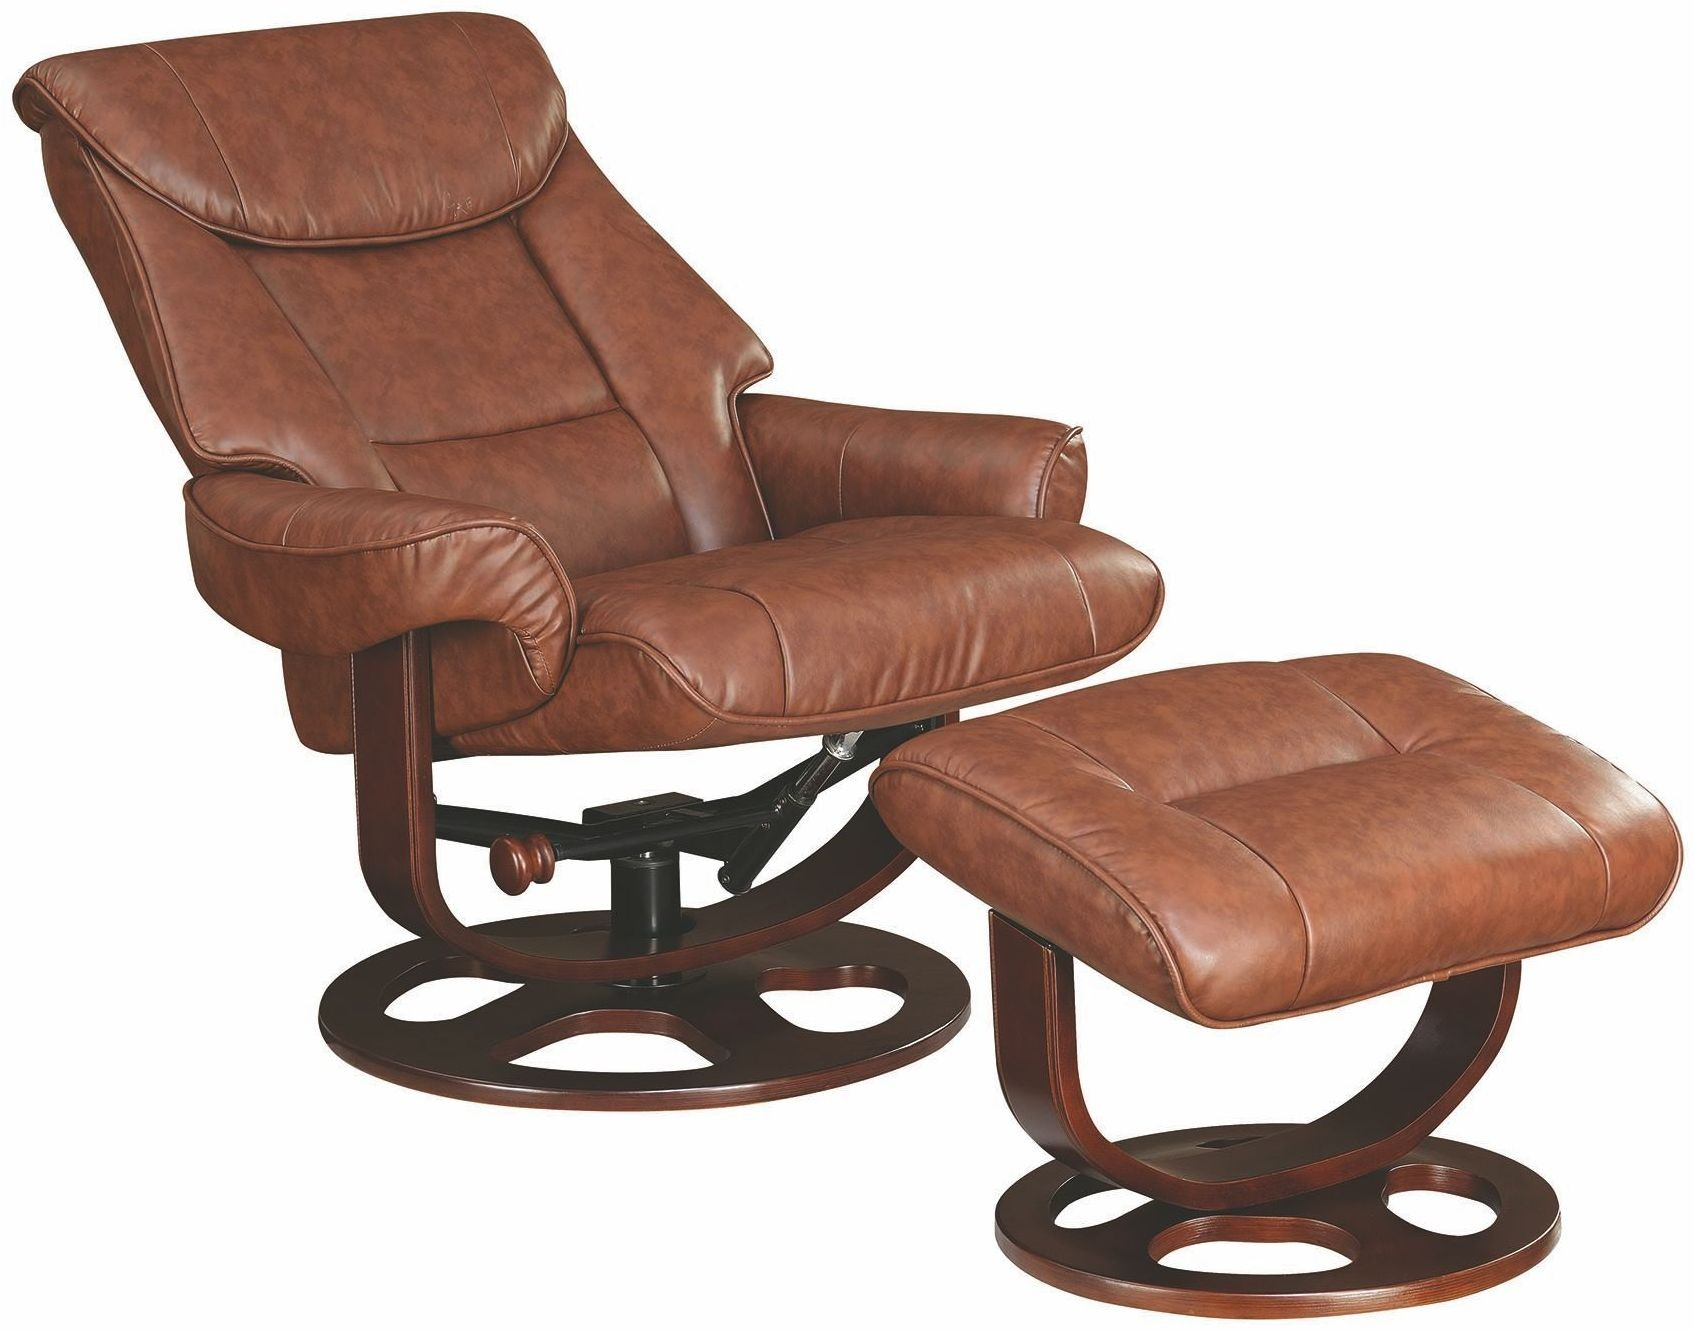 Glider Chair With Ottoman: Brown Glider Recliner With Ottoman, 600087, Coaster Furniture